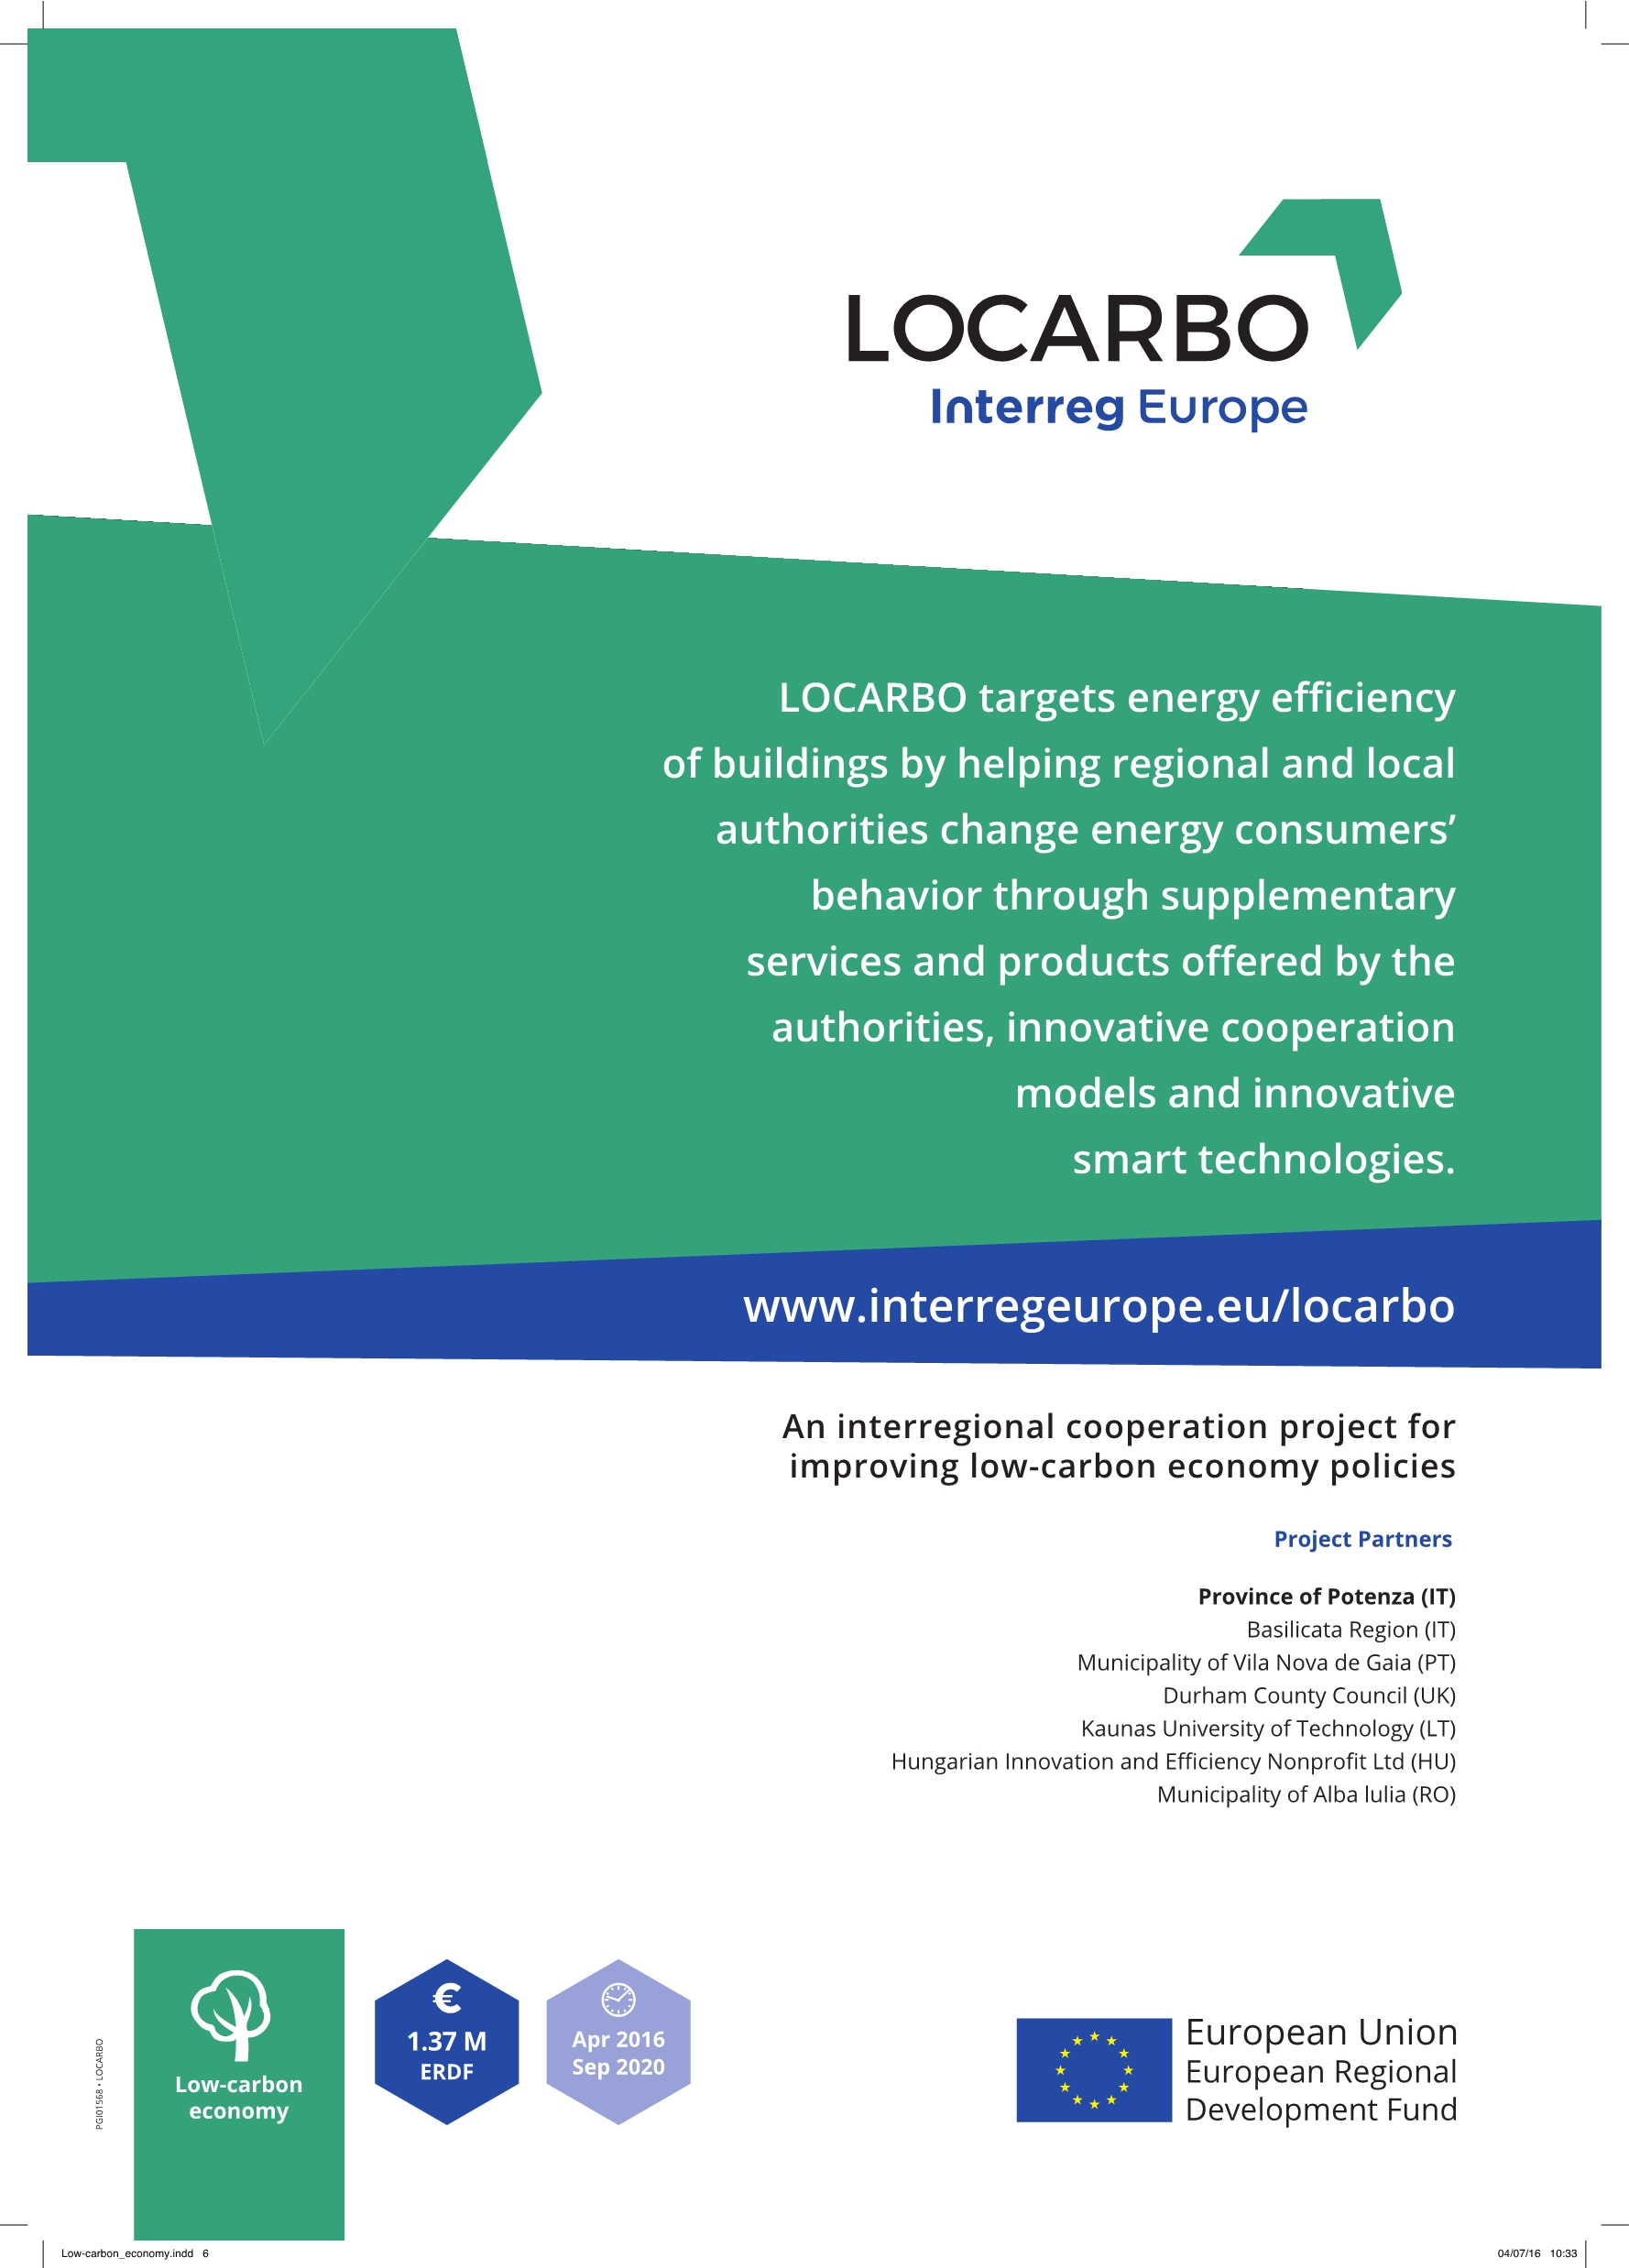 PROGETTO LOCARBO-INTERREG EUROPE 2014-2020 - #weResilient